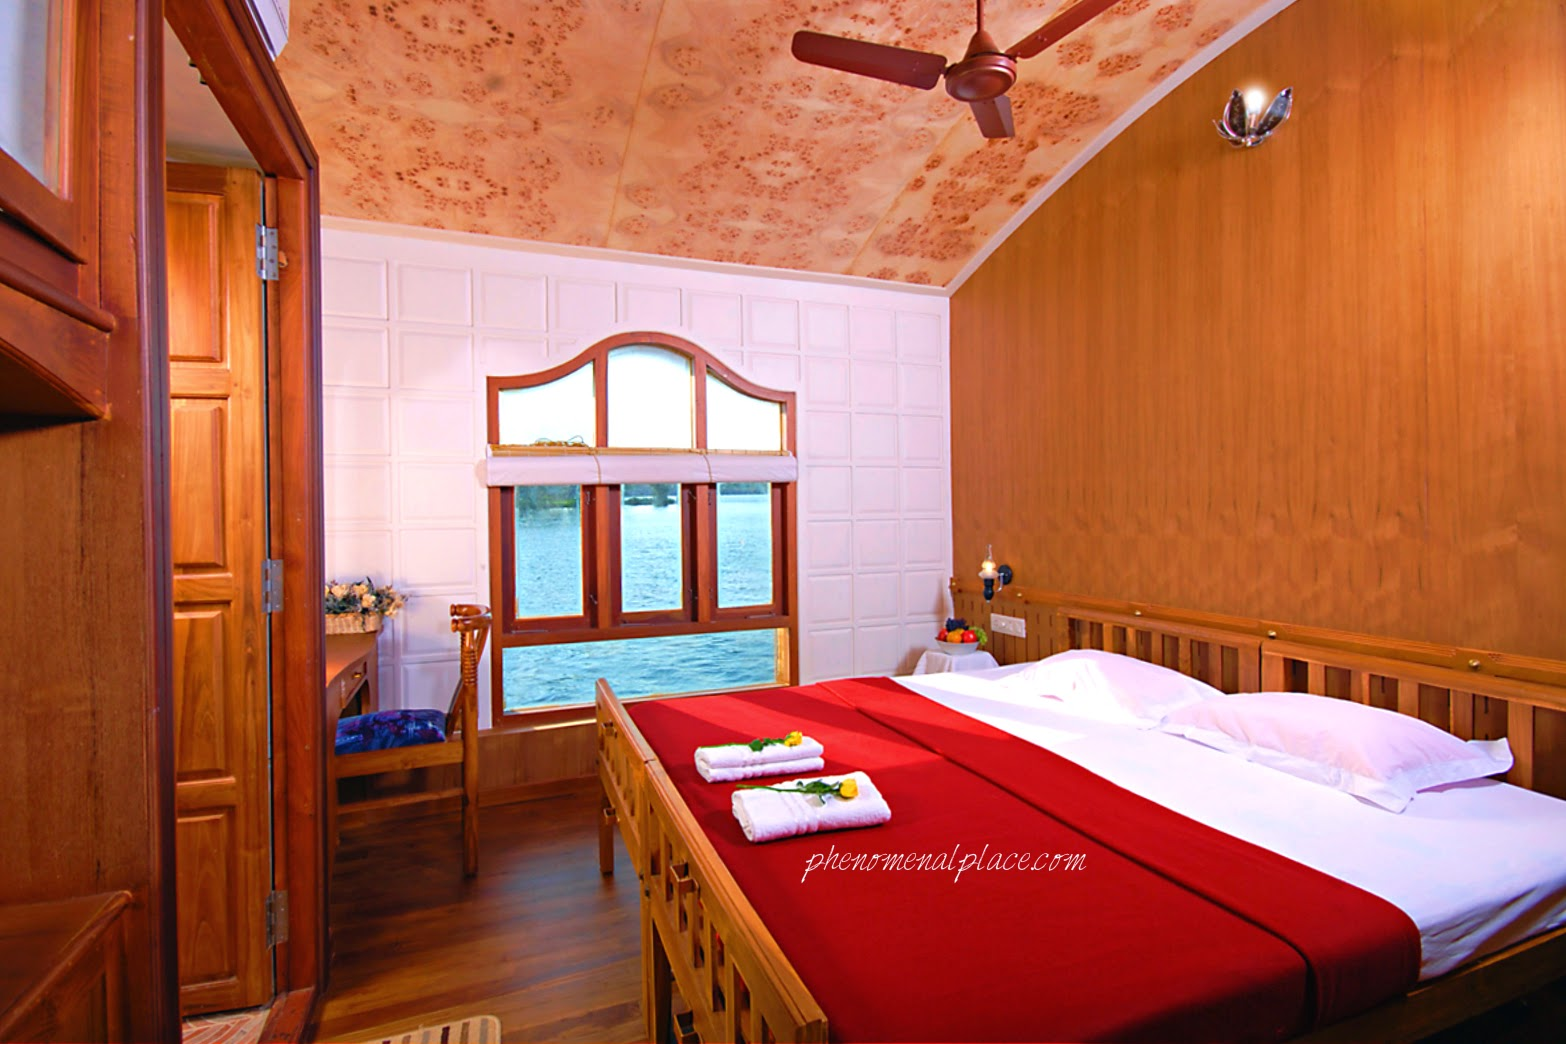 How To Do An Alleppey Houseboat Trip Places On The